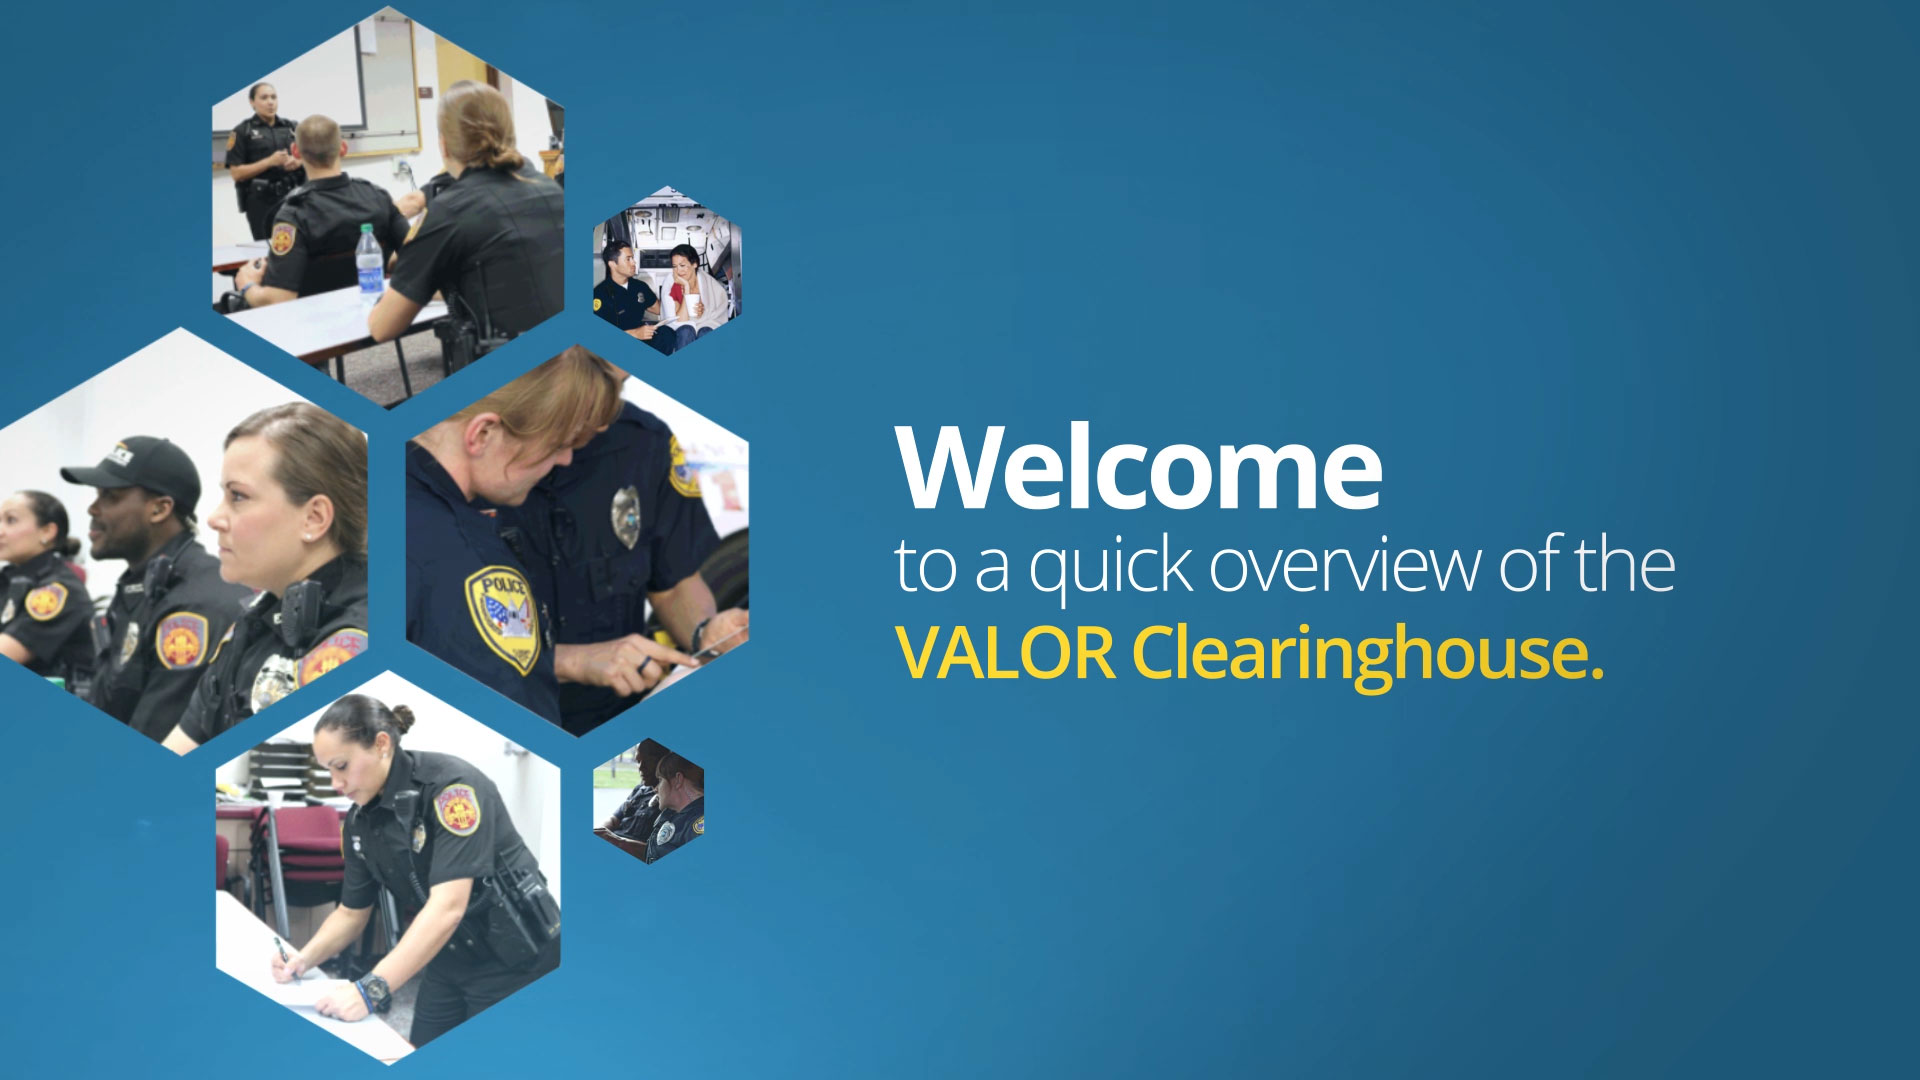 VALOR Clearninghouse